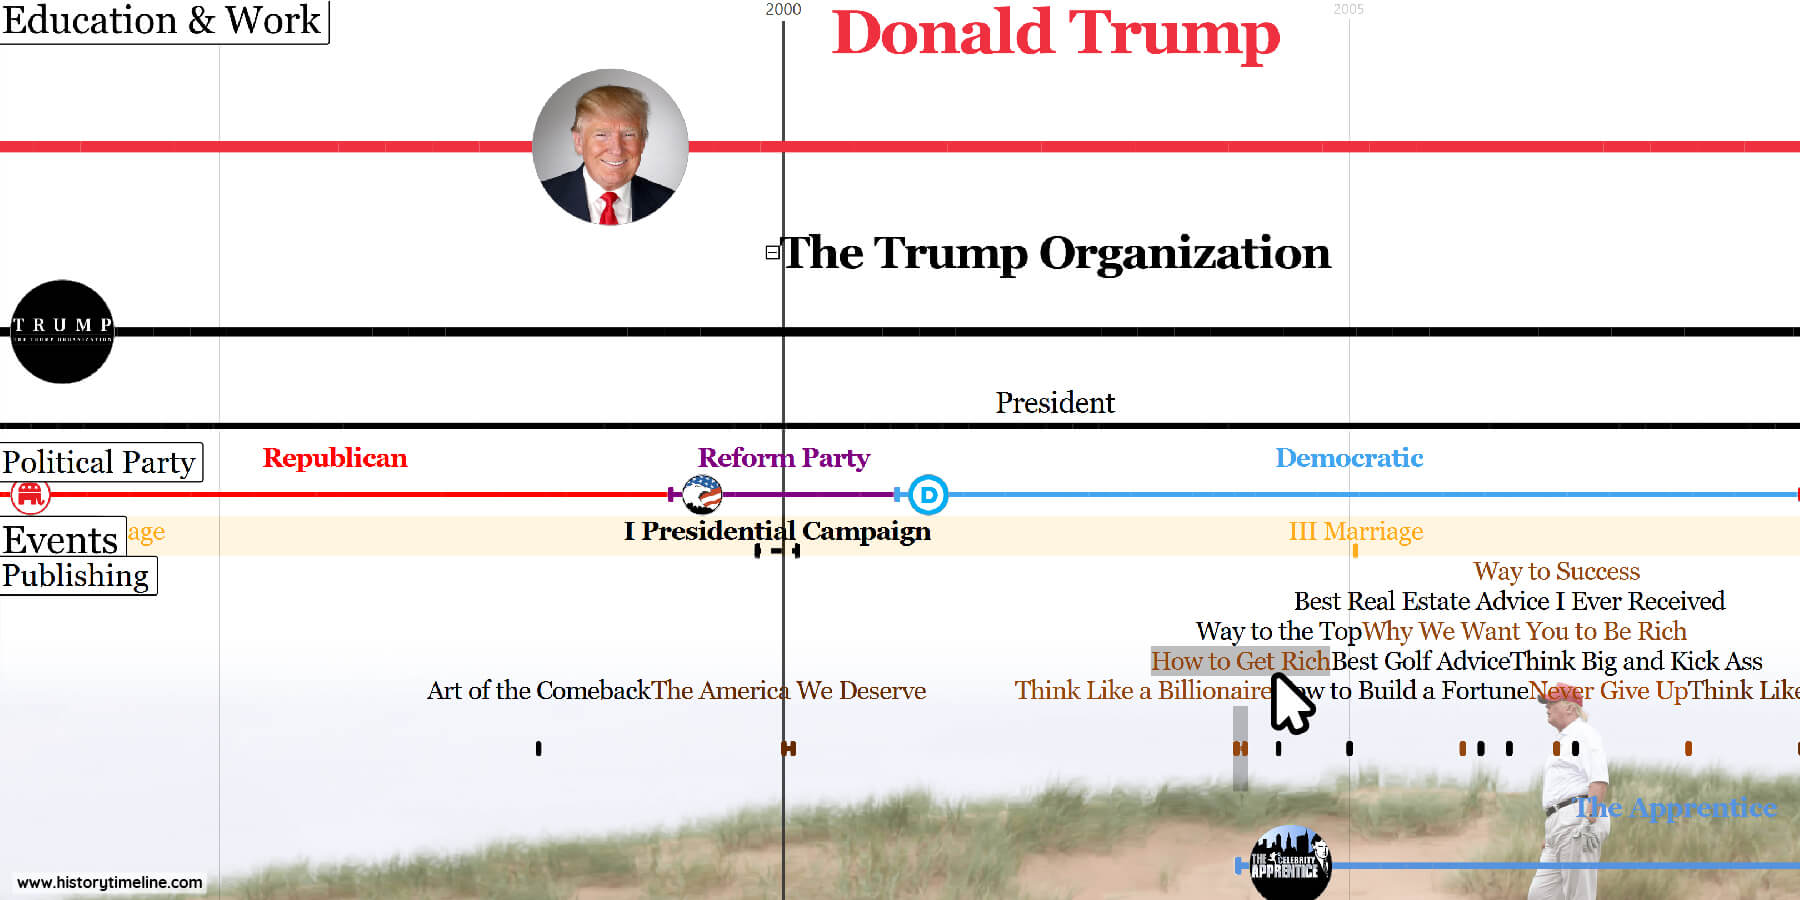 Donald Trump life and presidential timeline